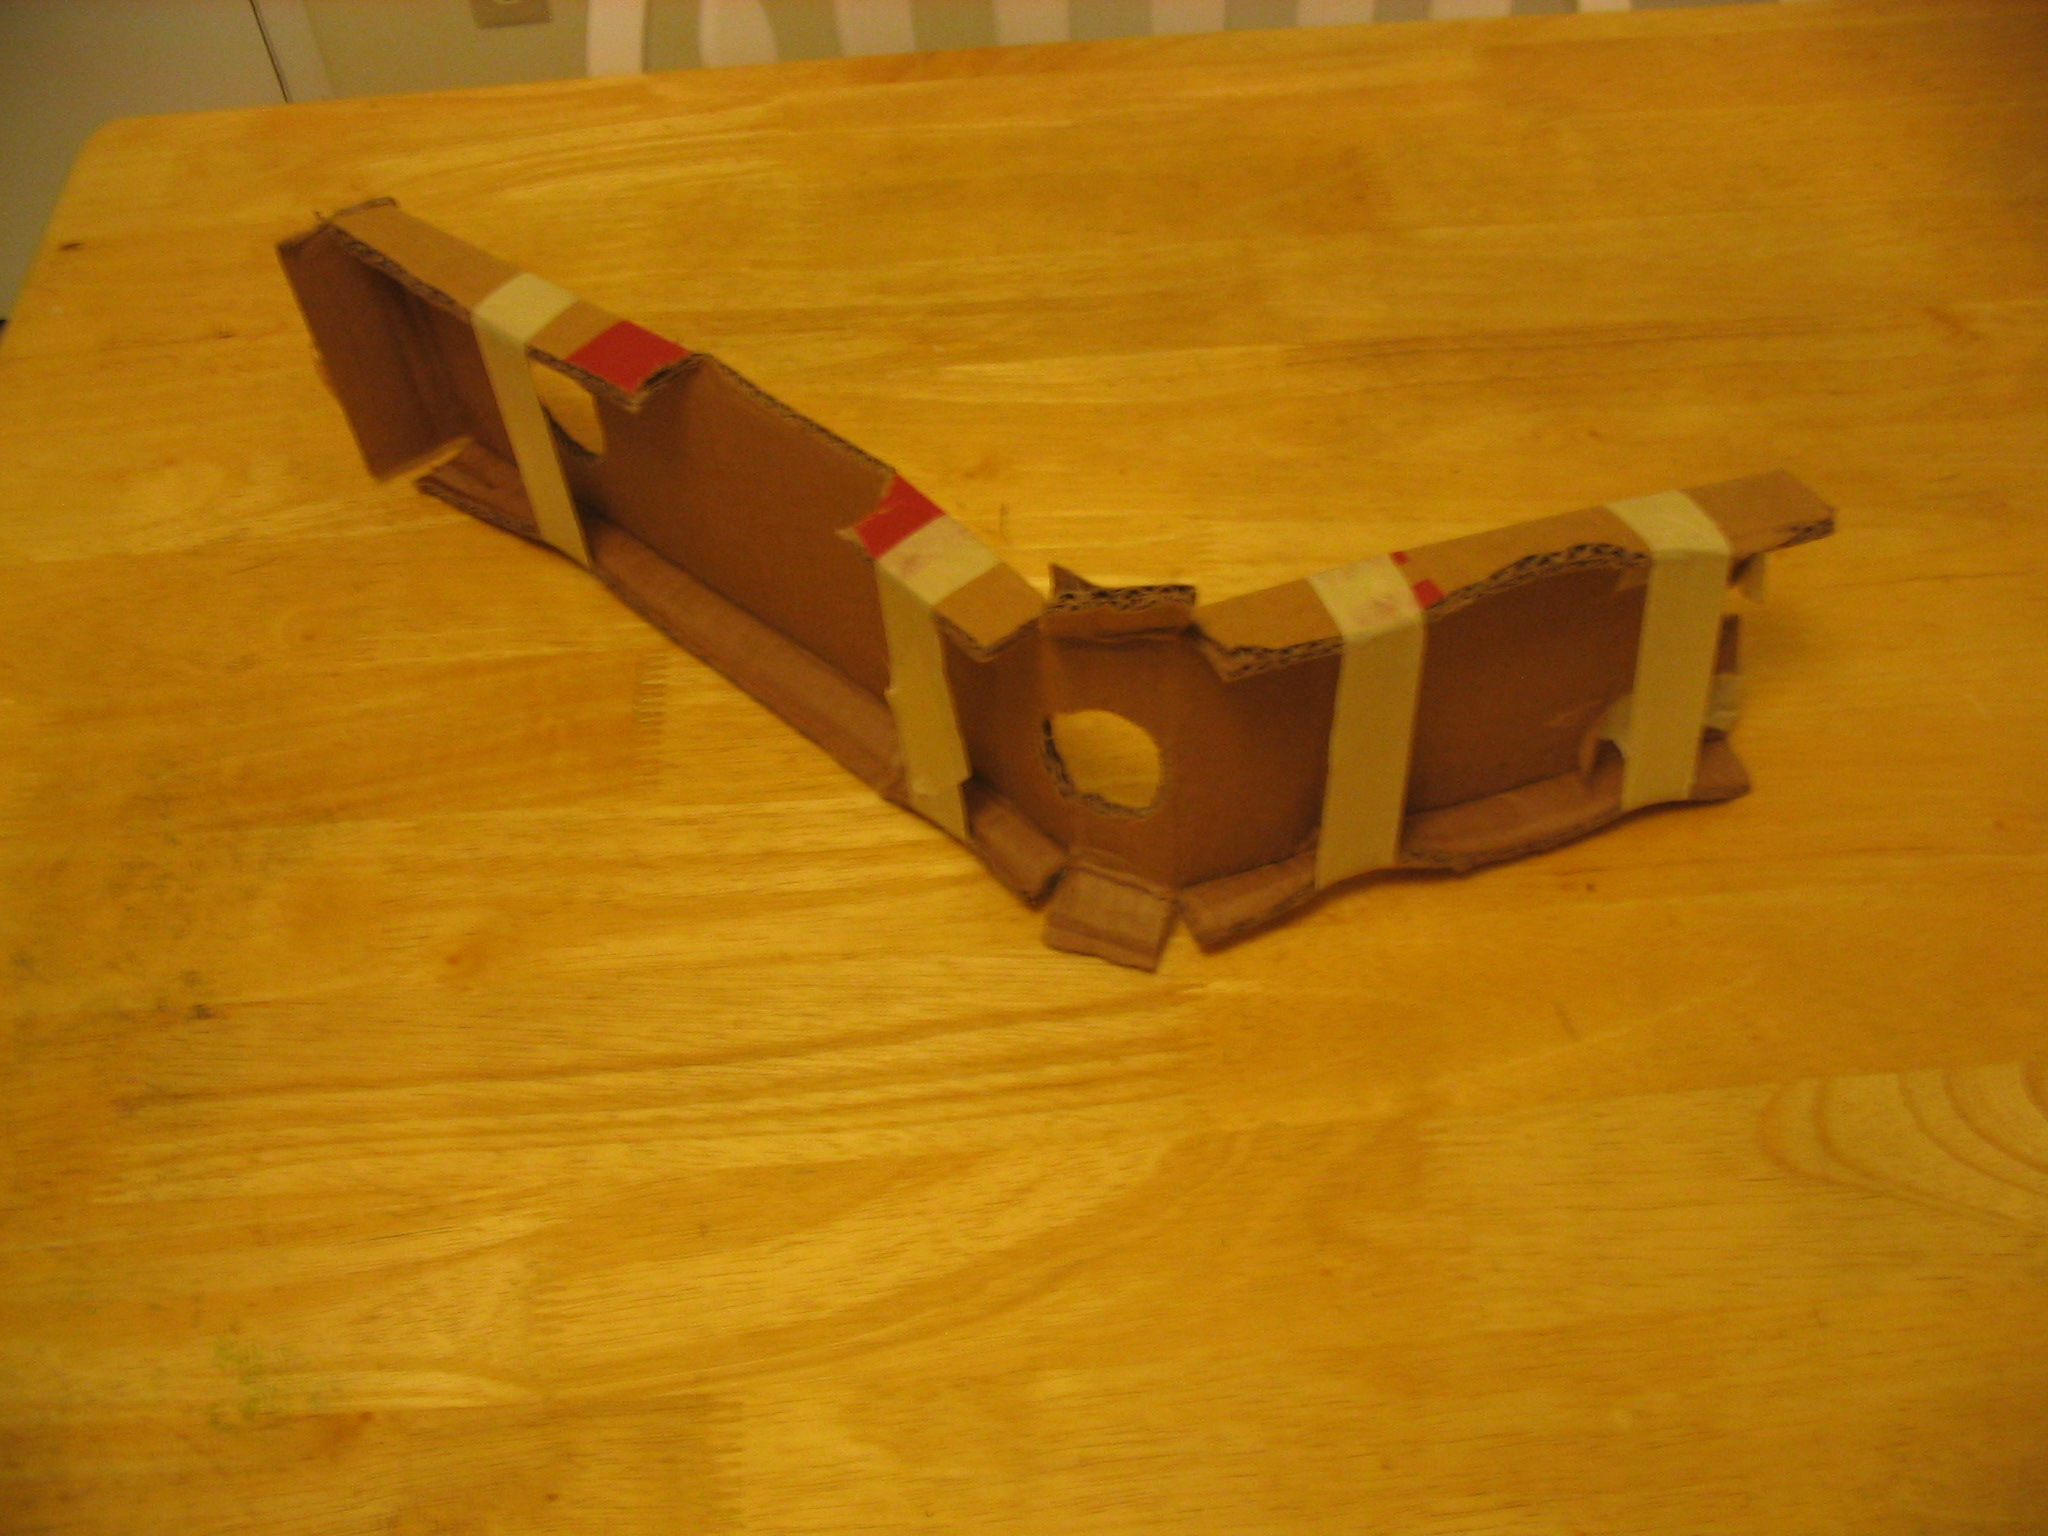 First rough cardboard arm